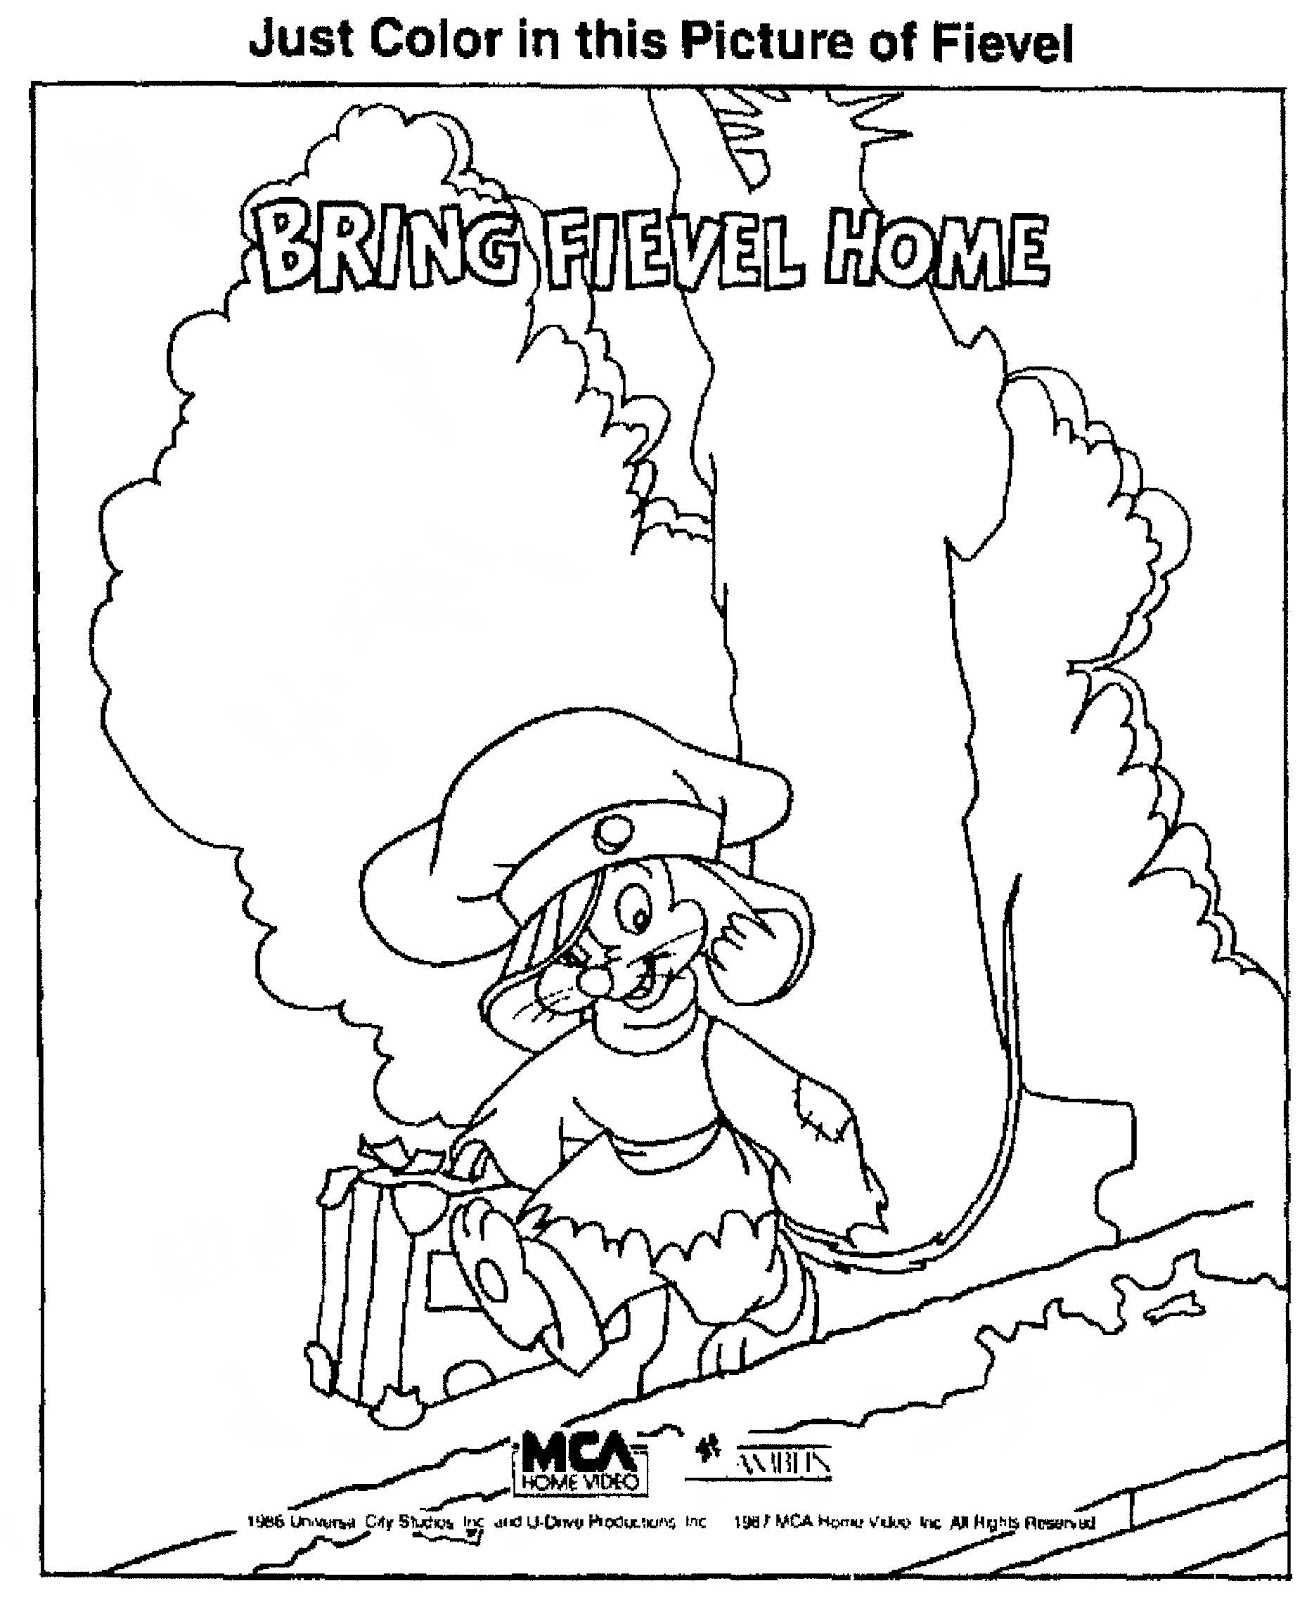 fievel coloring pages - photo#26